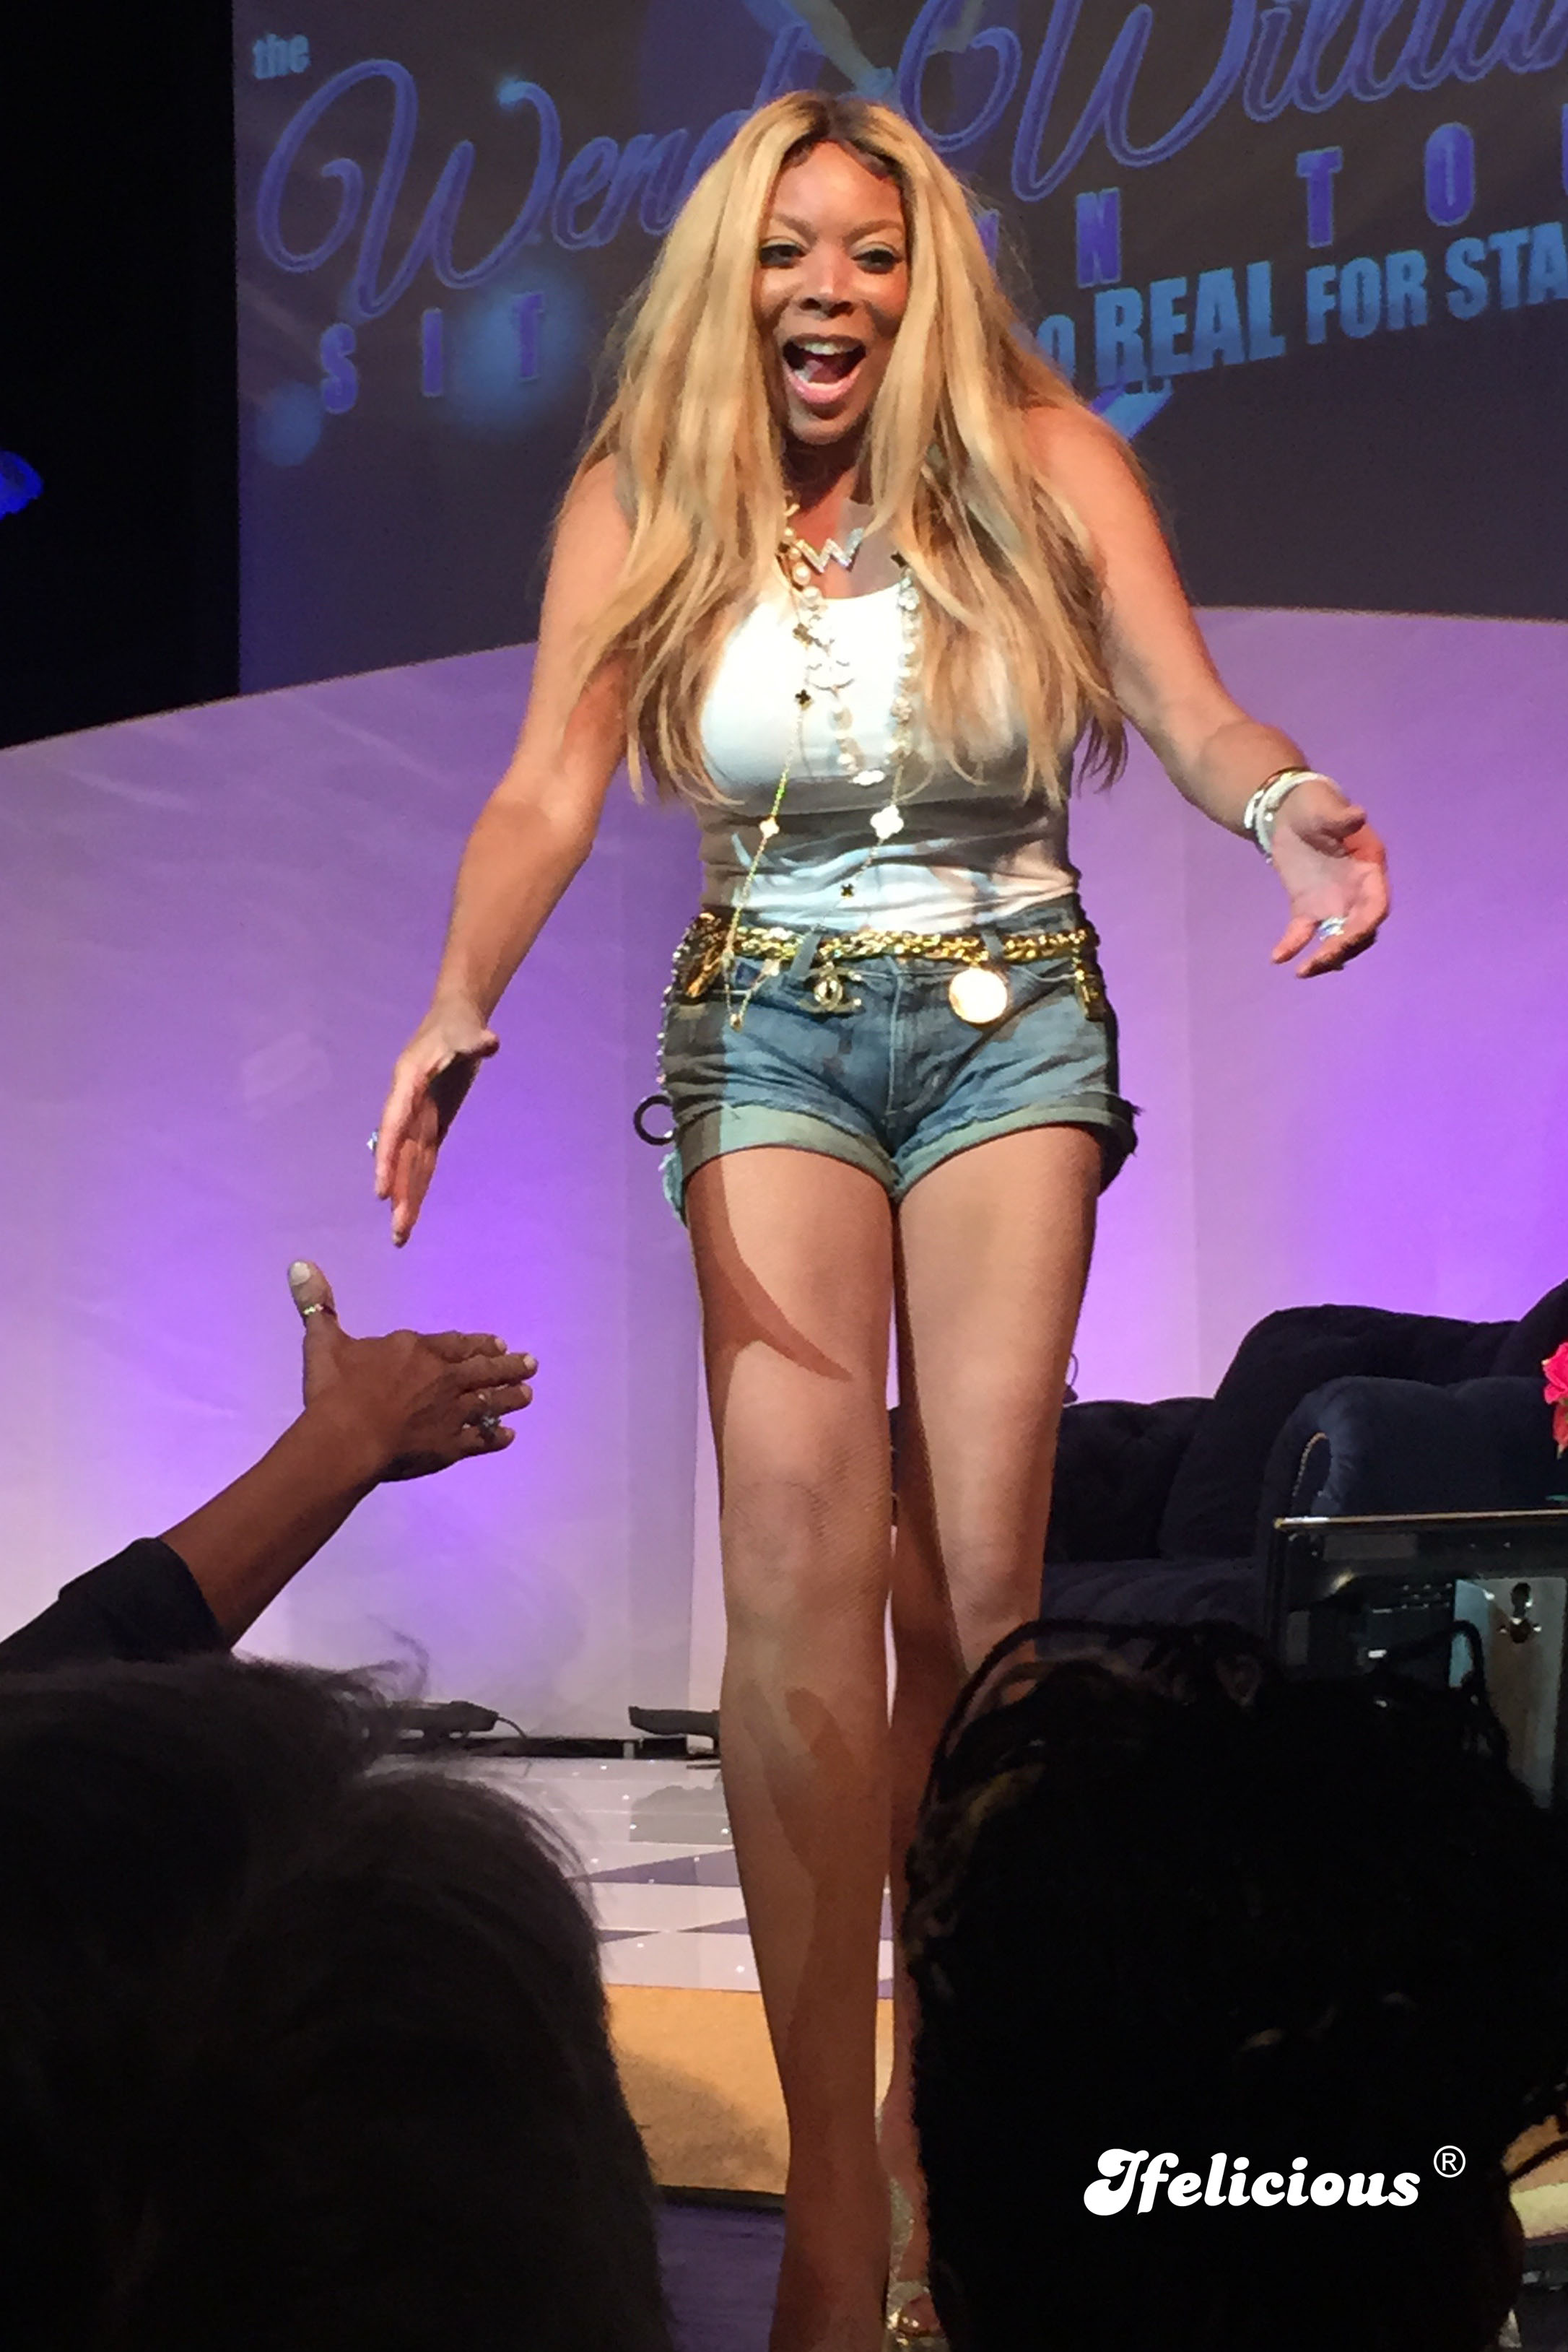 wendy williams zimbiowendy williams show, wendy williams husband, wendy williams son, wendy williams instagram, wendy williams young, wendy williams memes, wendy williams wiki, wendy williams 2017, wendy williams weight loss, wendy williams hot topics, wendy williams zimbio, wendy williams oscar, wendy williams family, wendy williams hsn, wendy williams gif, wendy williams married, wendy williams makeup, wendy williams wikipedia, wendy williams chrissy teigen, wendy williams chet hanks